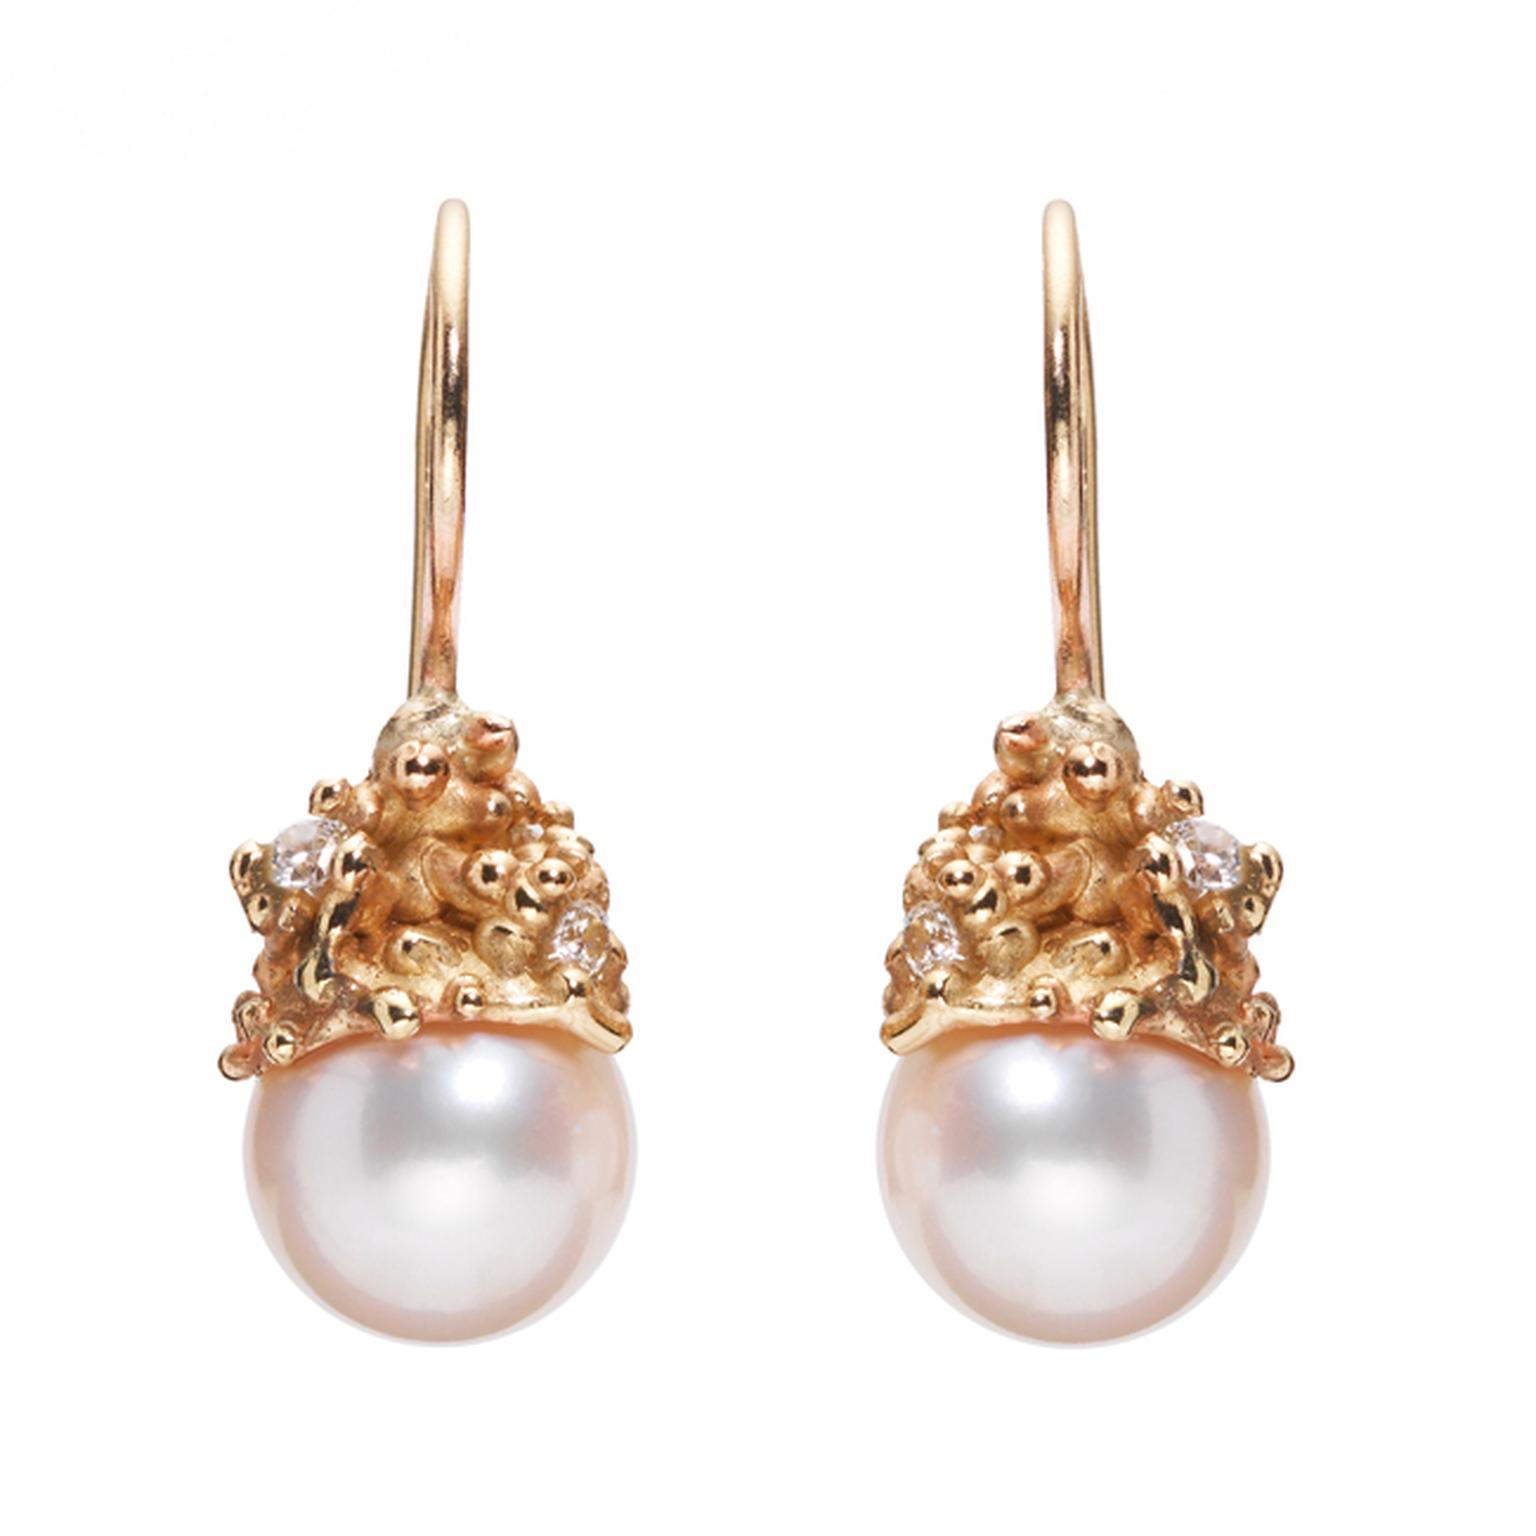 Ruth-Tomlinson-Pearl-Drop-Earrings-Main